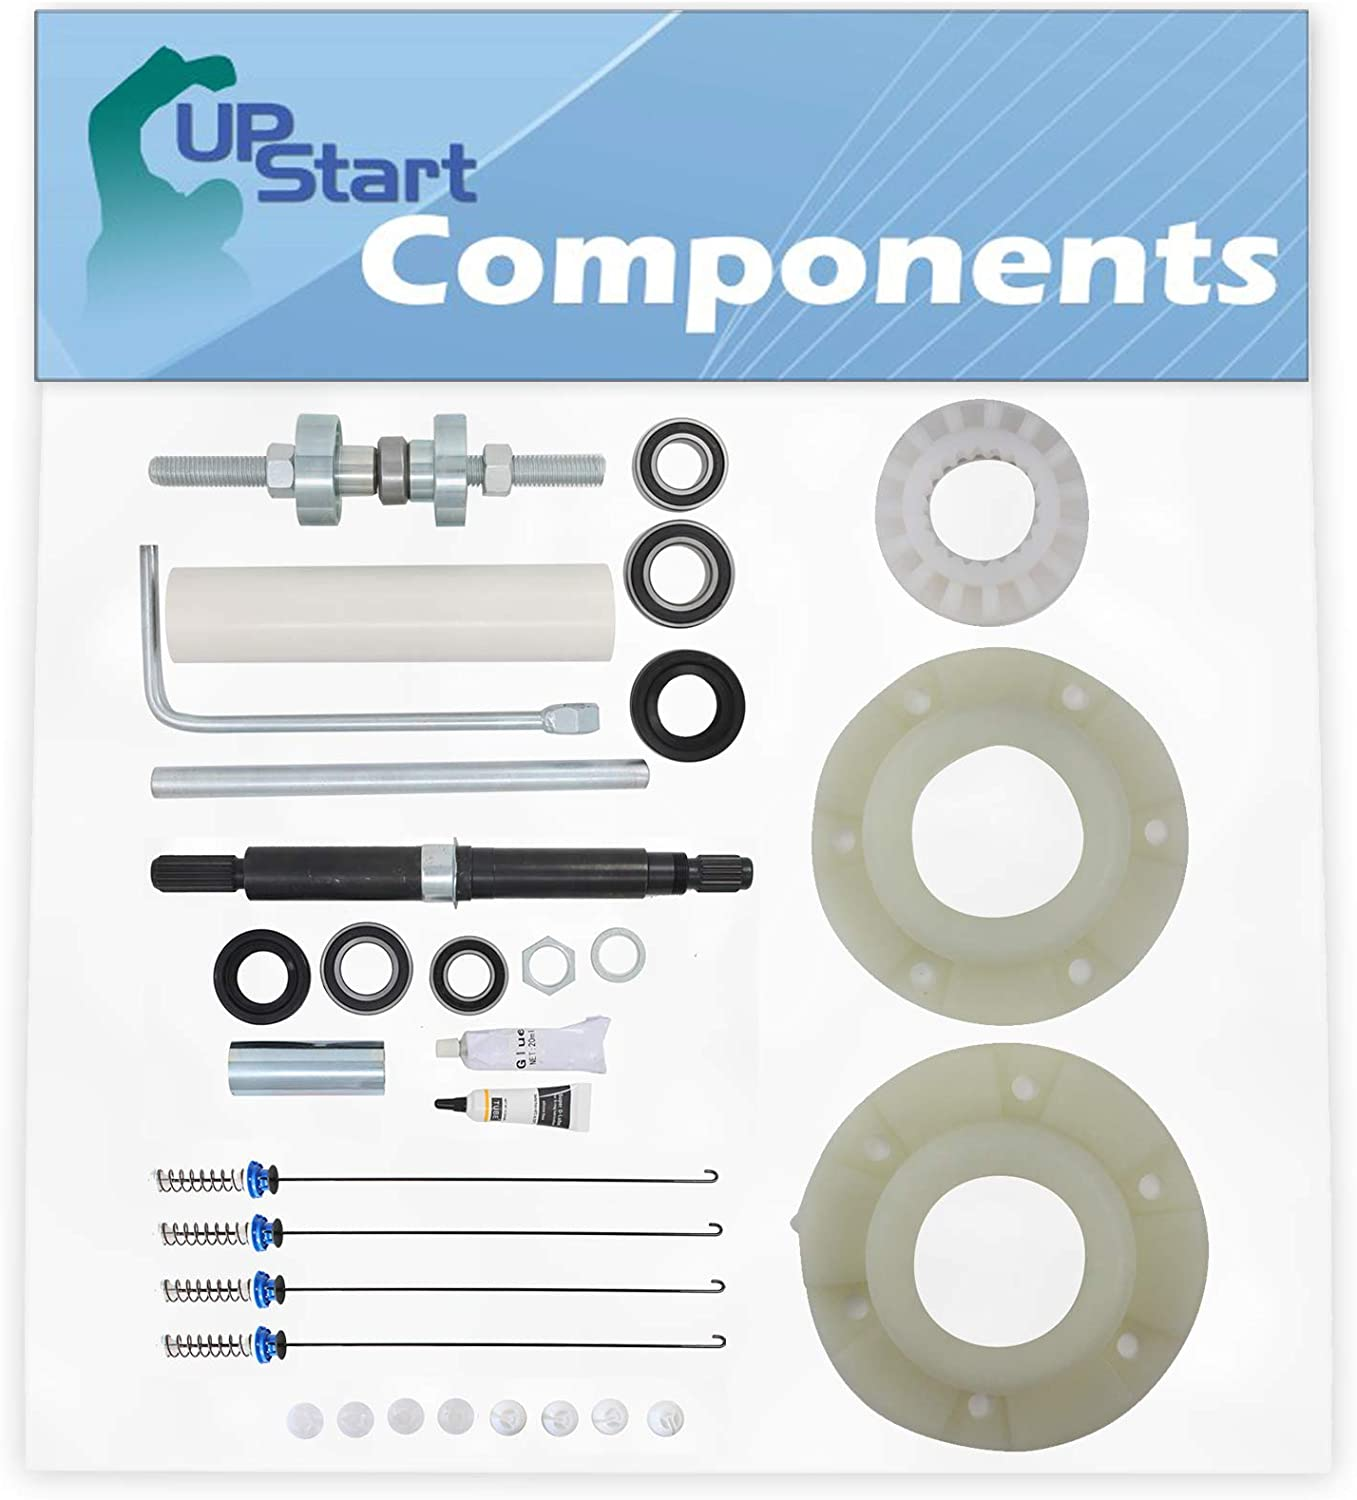 W10447783 Washer Tub Bearing Installation Tool, 280145 Hub Kit, W10435302 Tub Seal and Bearing Kit & W10820048 Suspension Rod Kit Replacement for Whirlpool WTW6400SW0